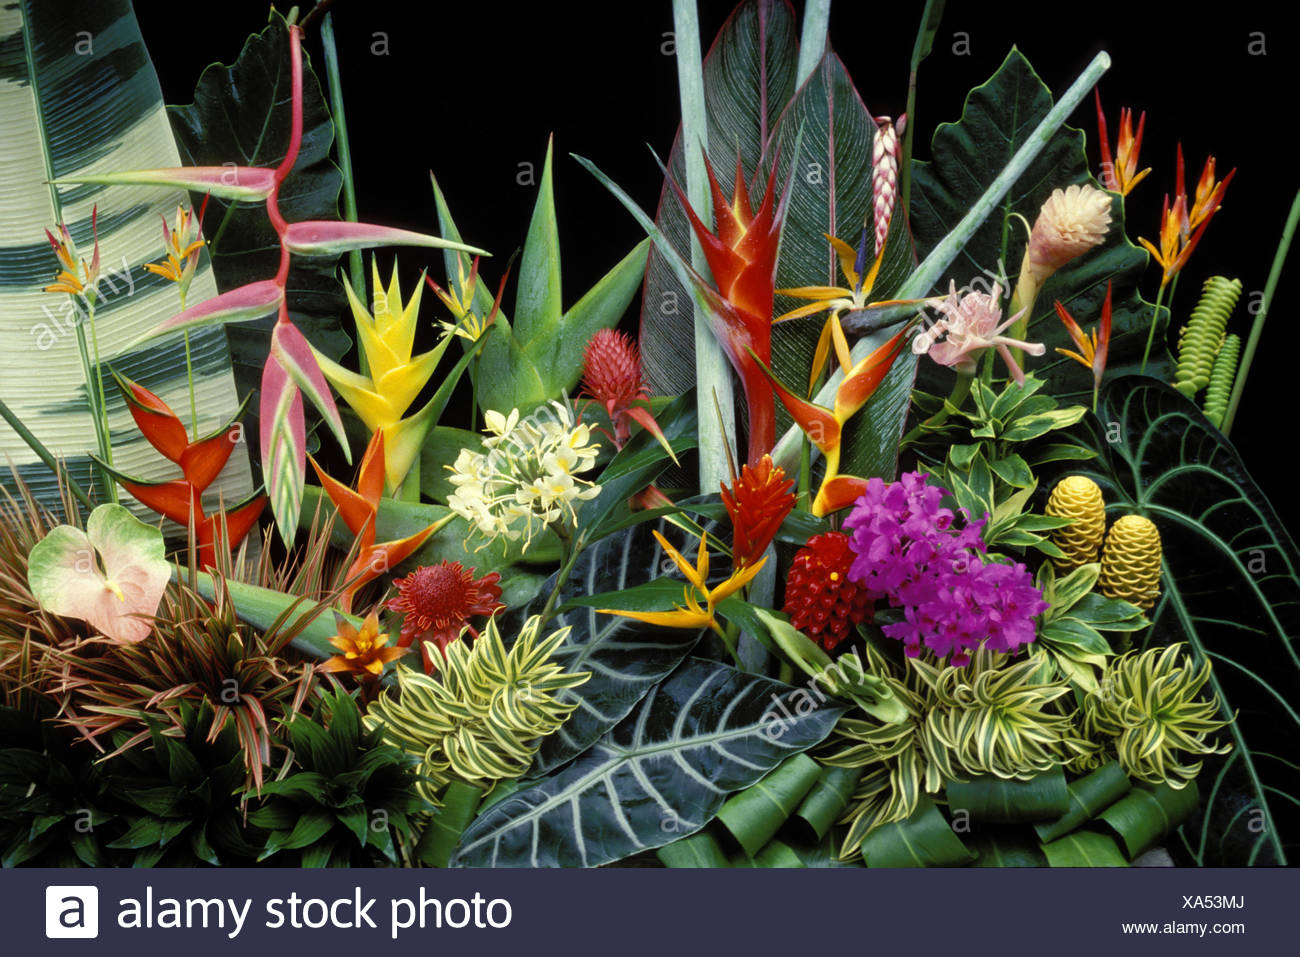 Heleconia and other tropical ornamentals - Stock Image